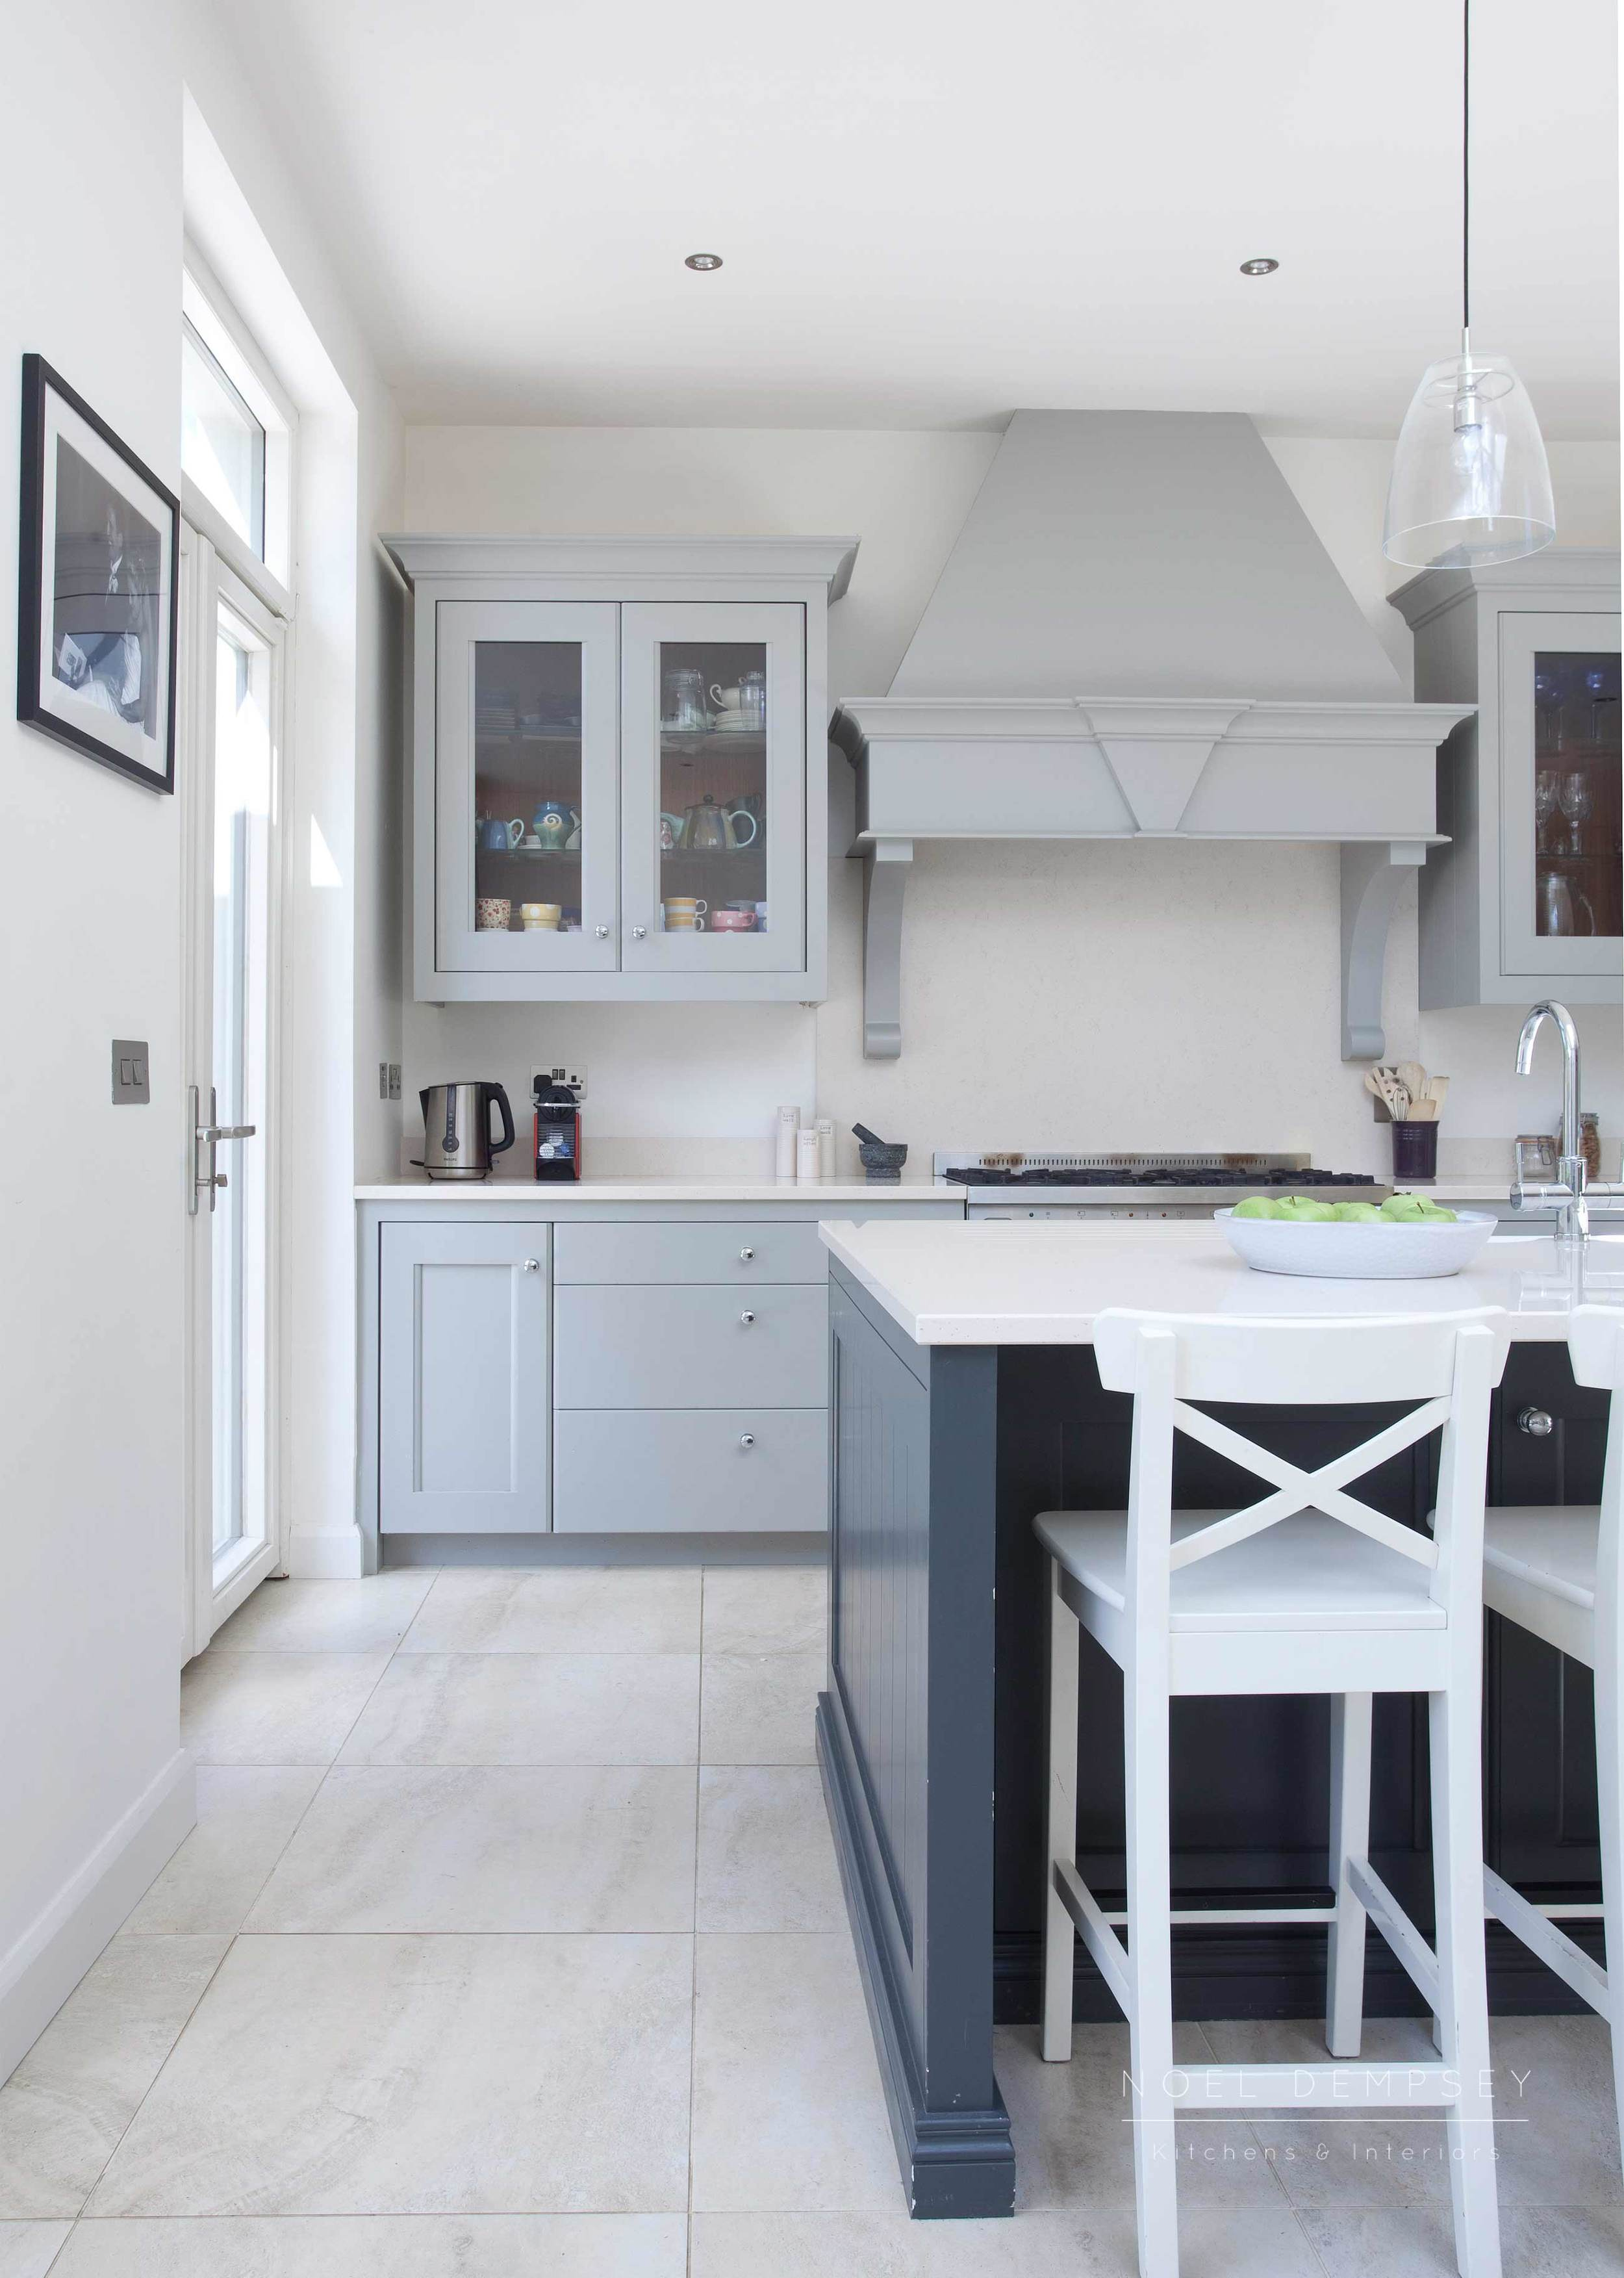 kitchen lamp bath design surrey — noel dempsey